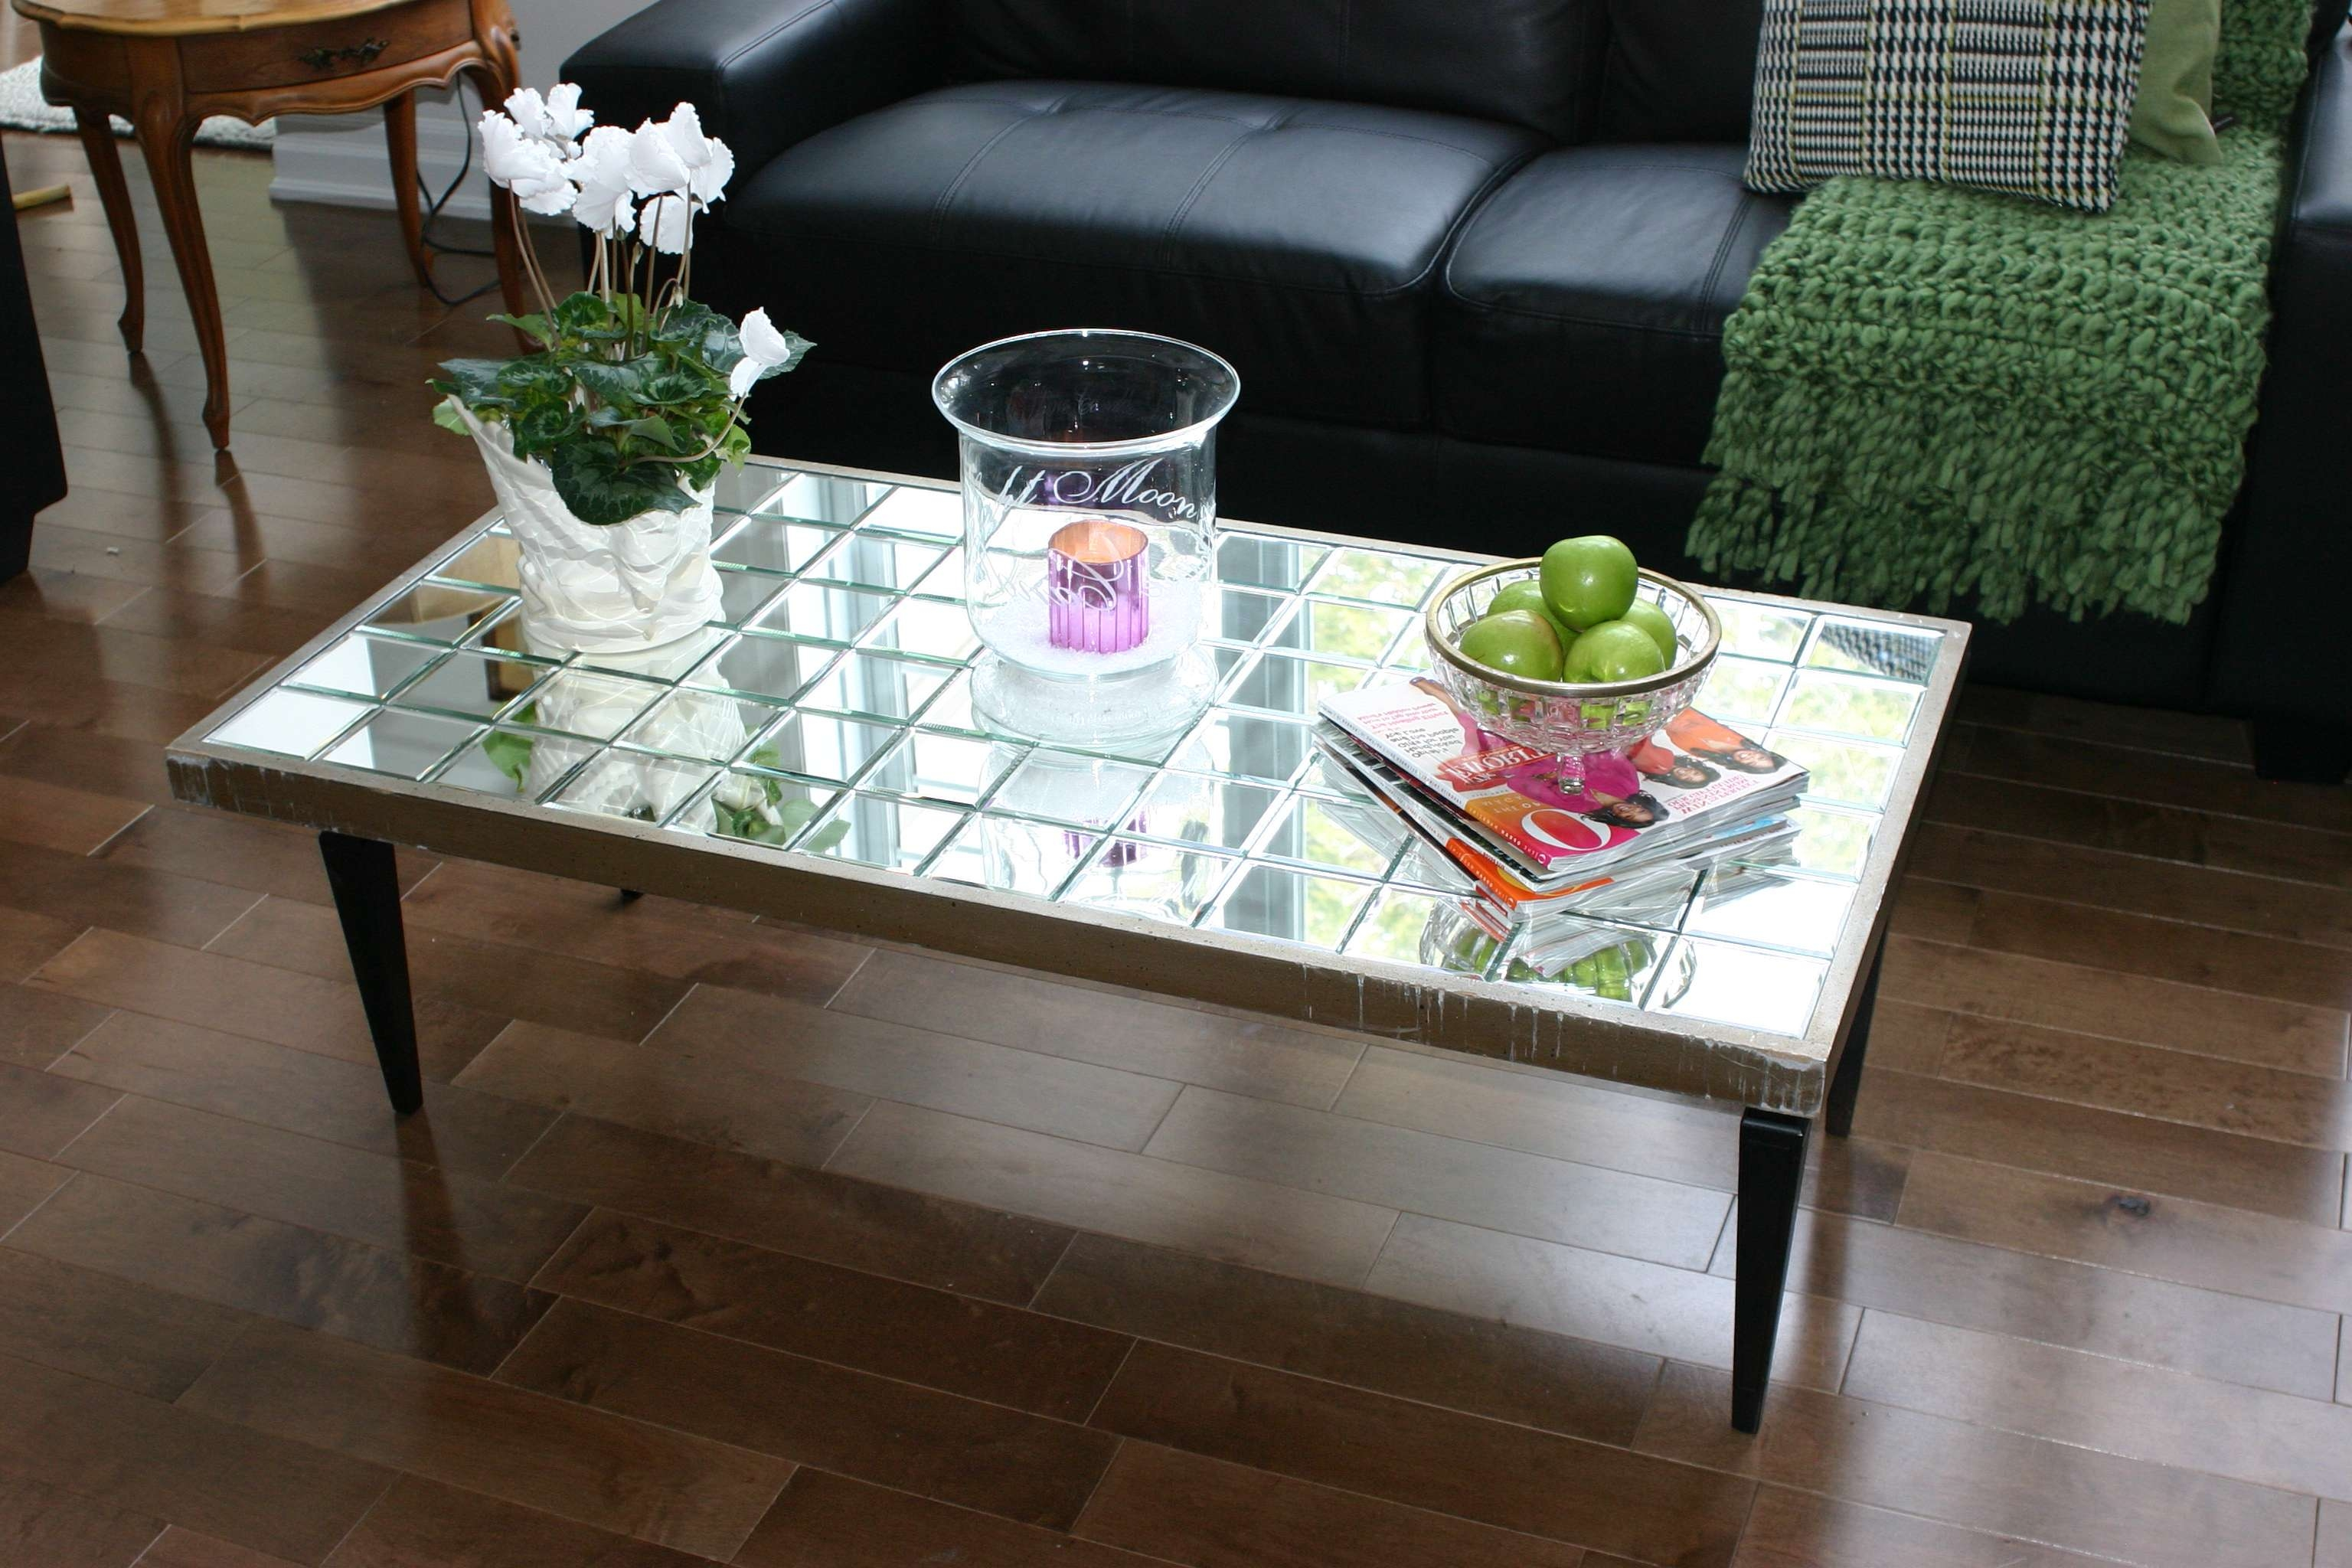 Throughout Popular Mirrored Coffee Tables (View 15 of 20)